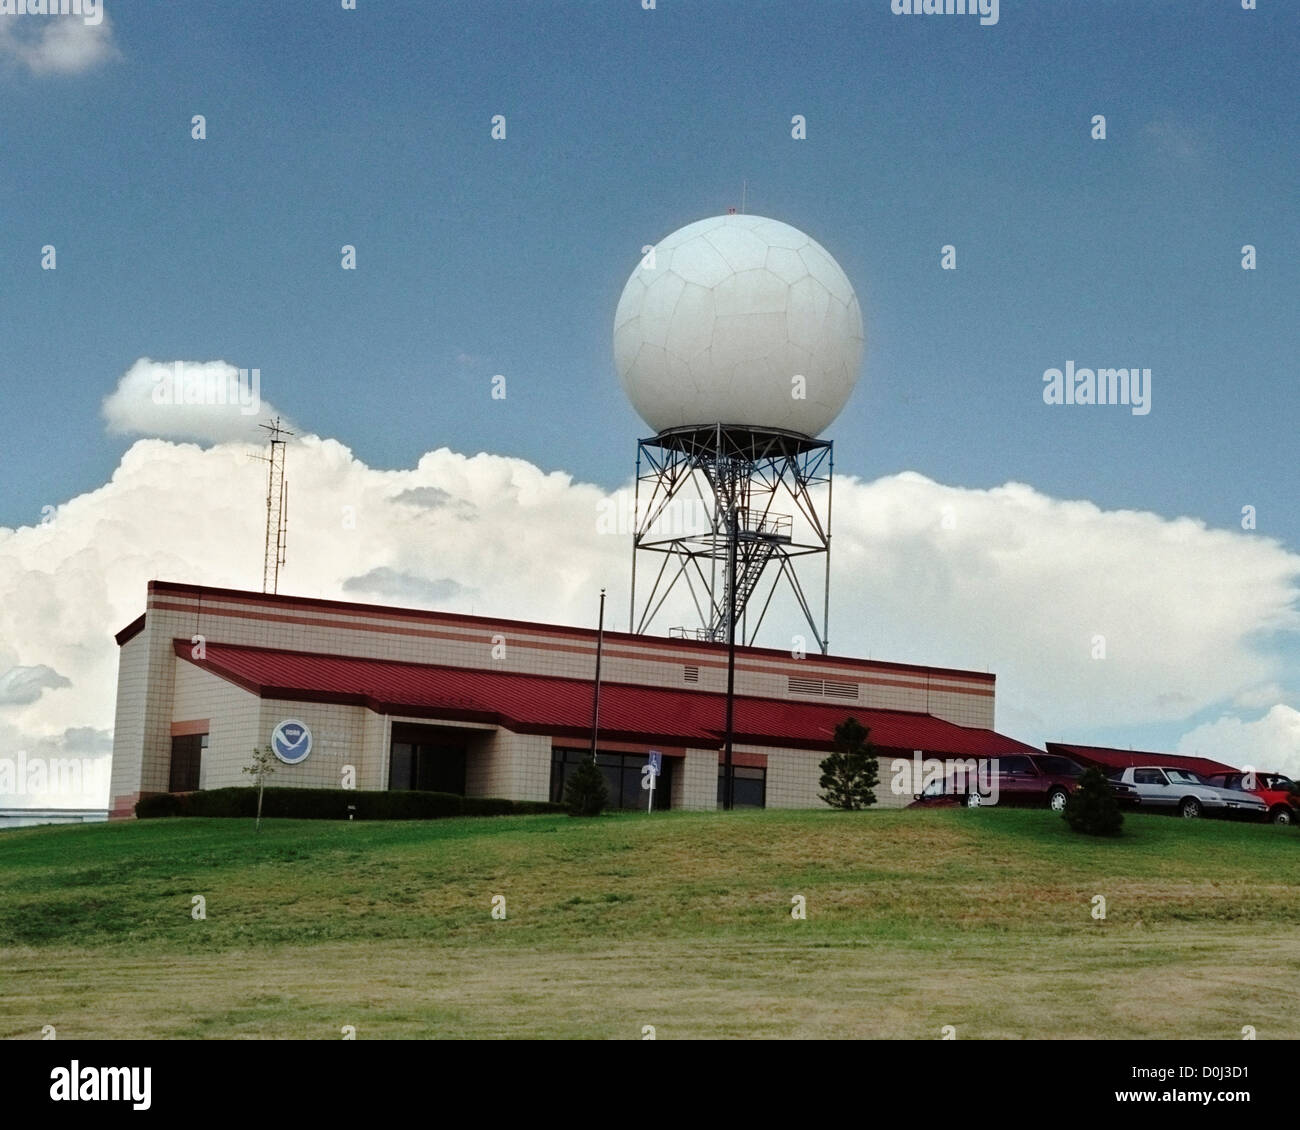 Doppler Radar at the National Weather Service in Dodge City, Kansas